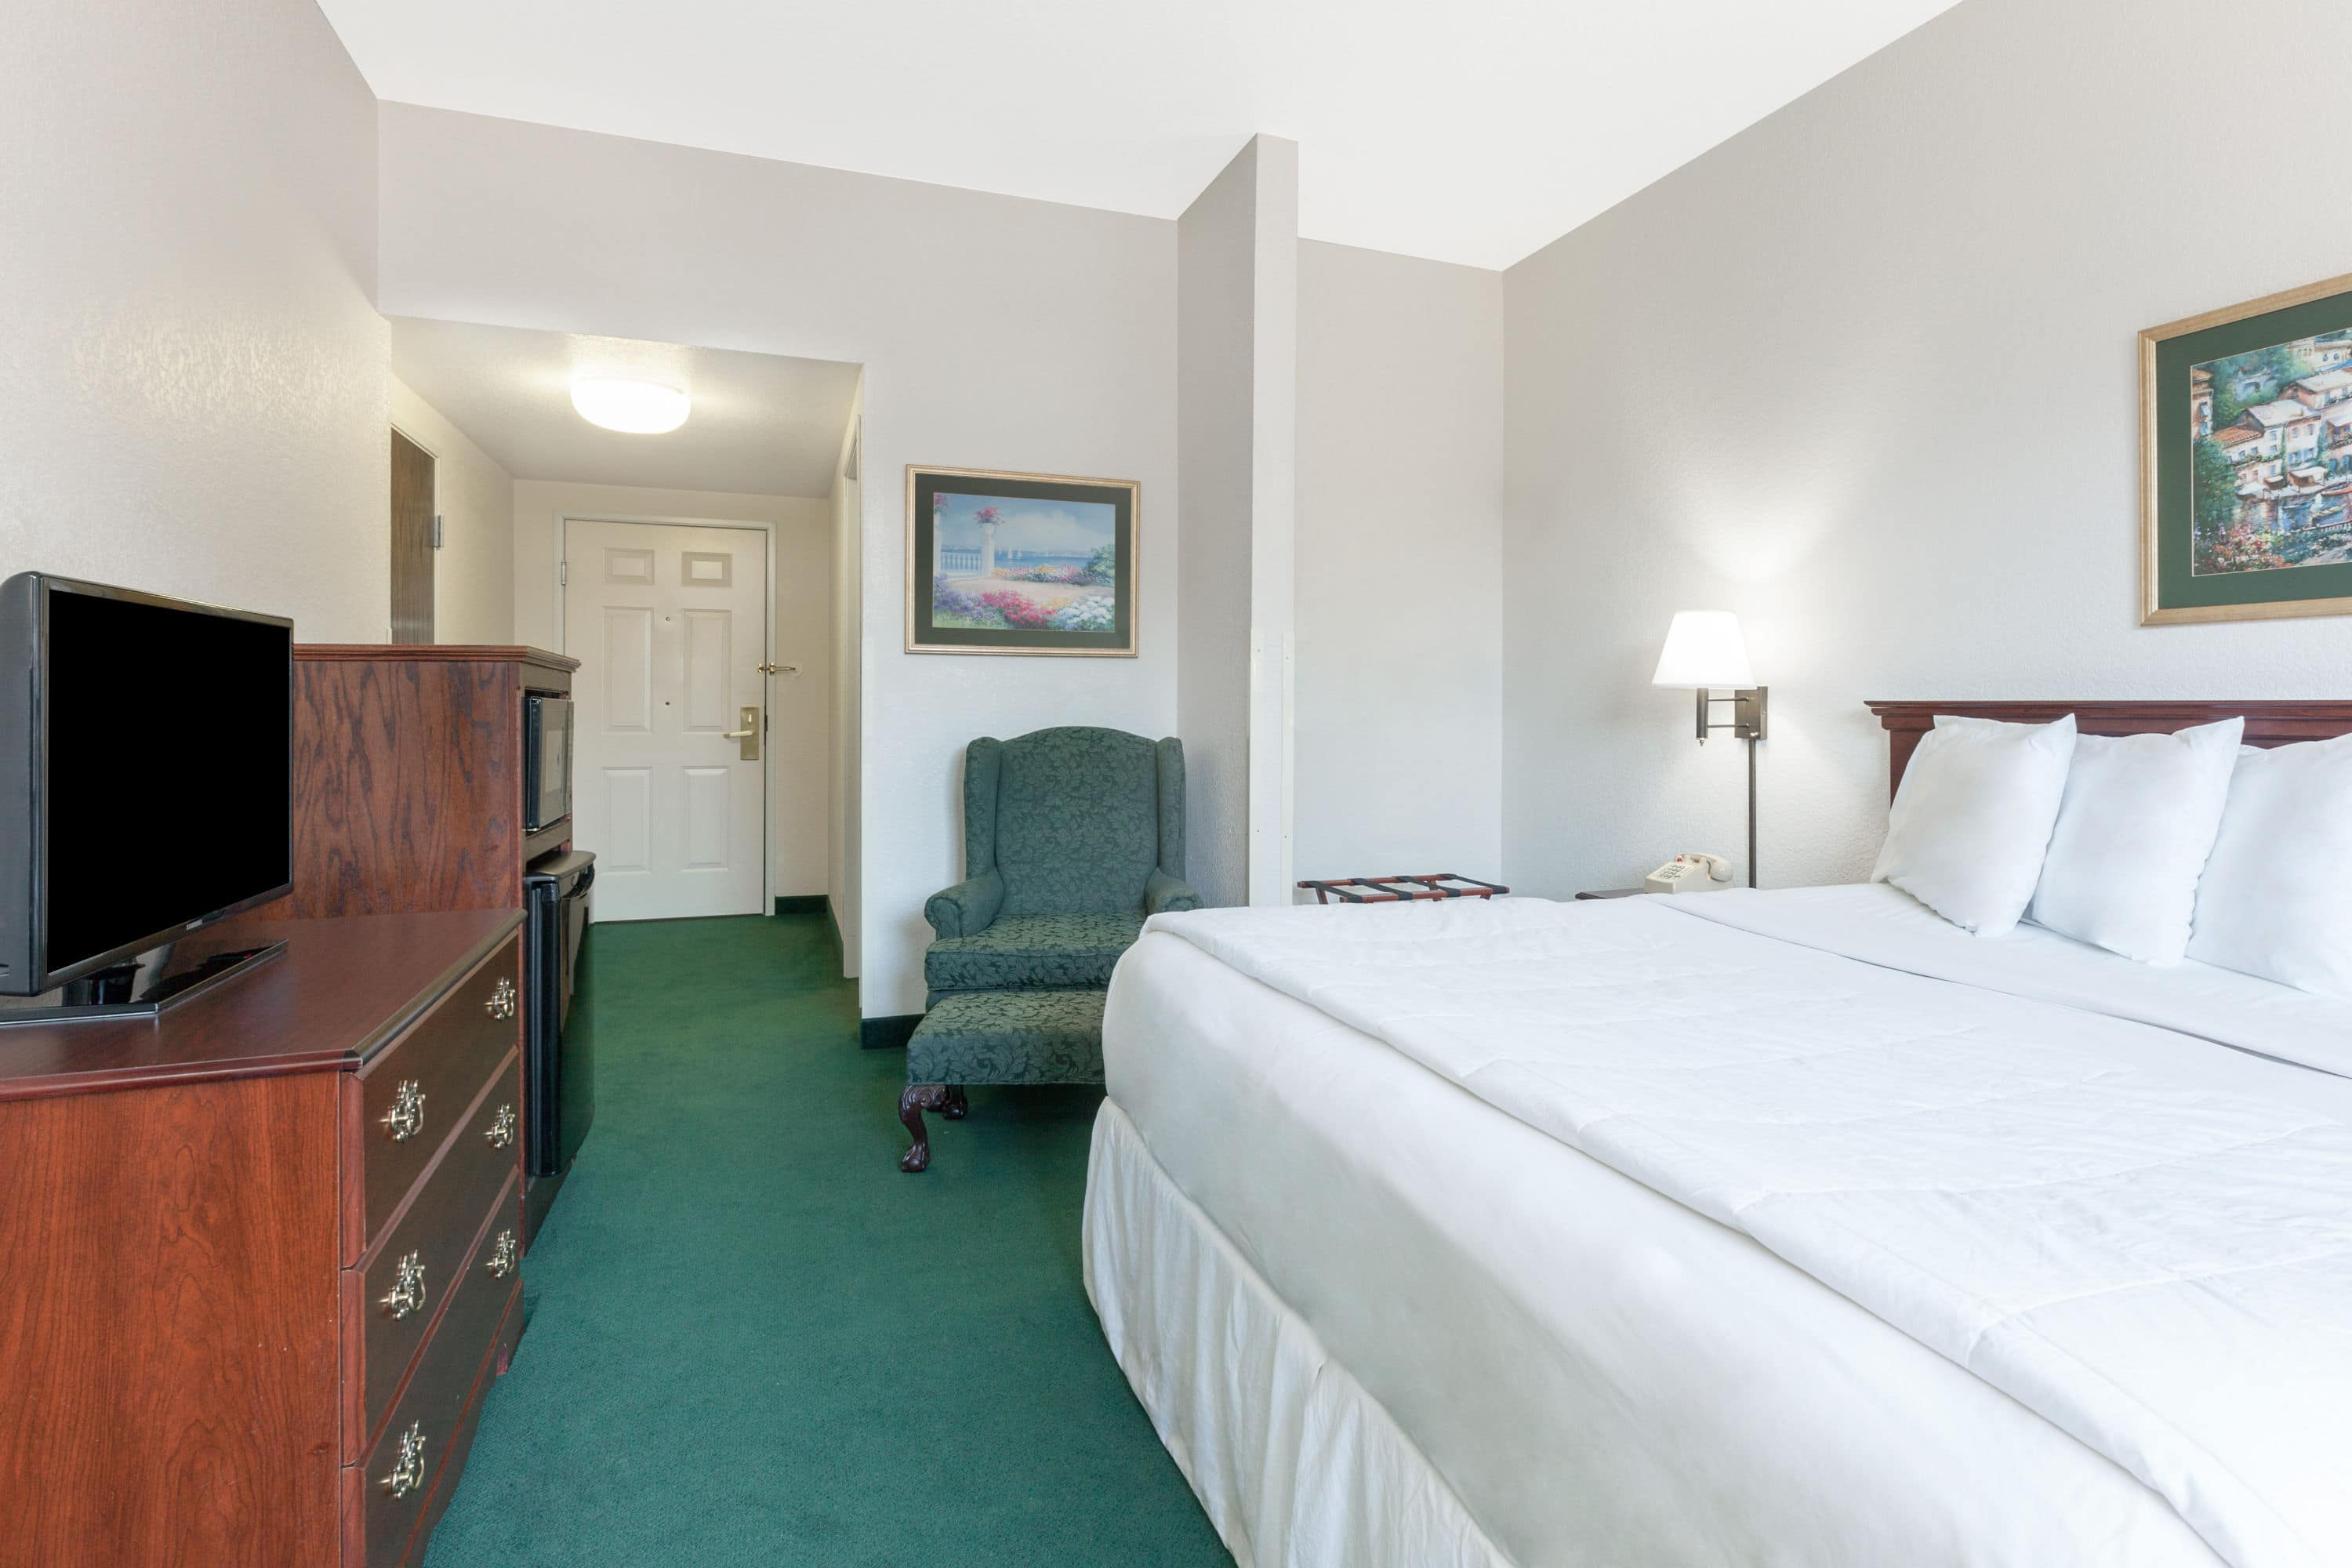 Guest room at the Days Inn & Suites Poteau in Poteau, Oklahoma